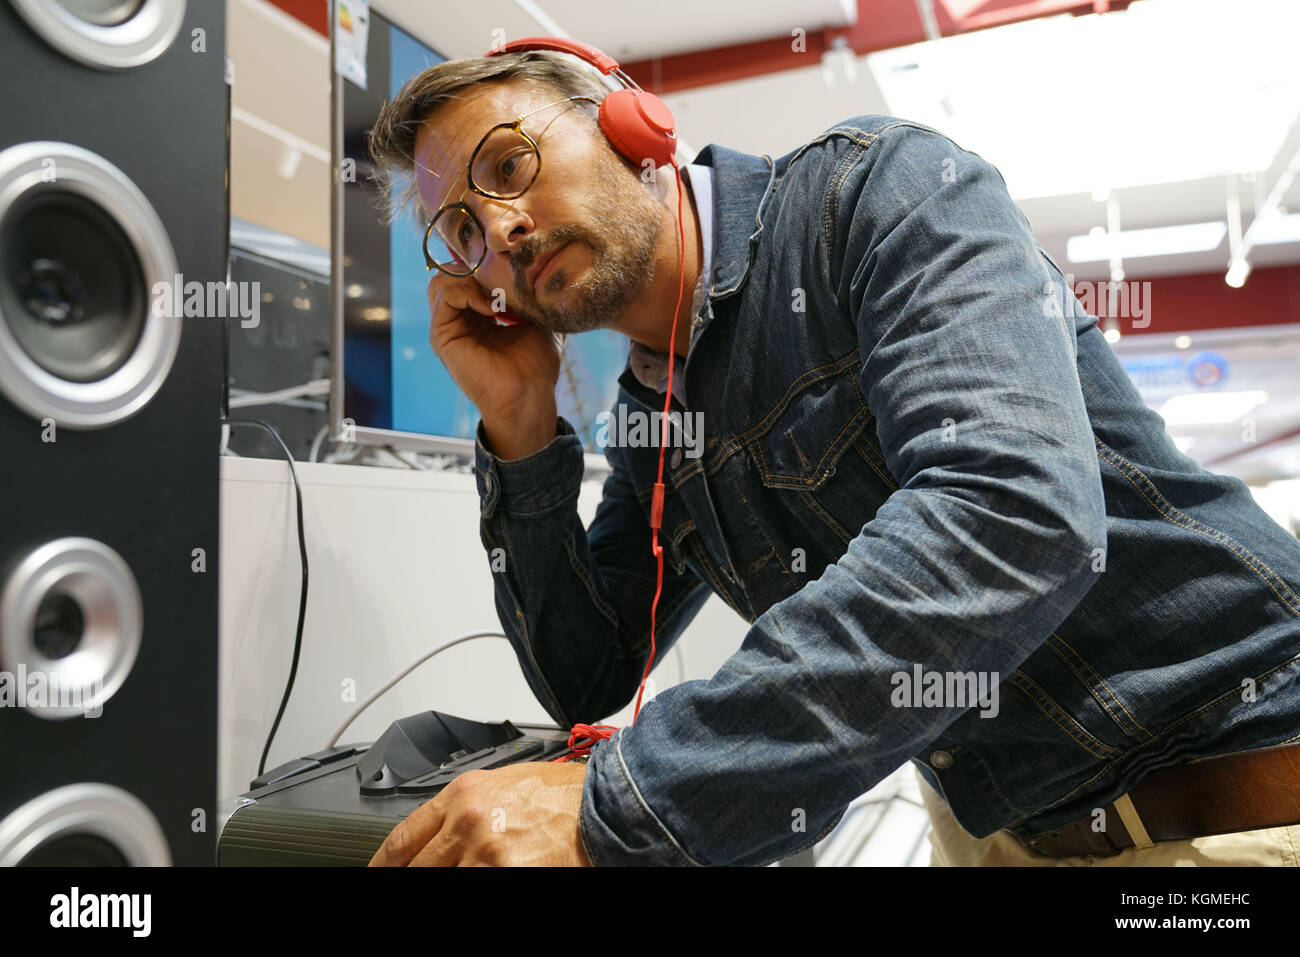 Man in multimedia store testing music with headphones - Stock Image